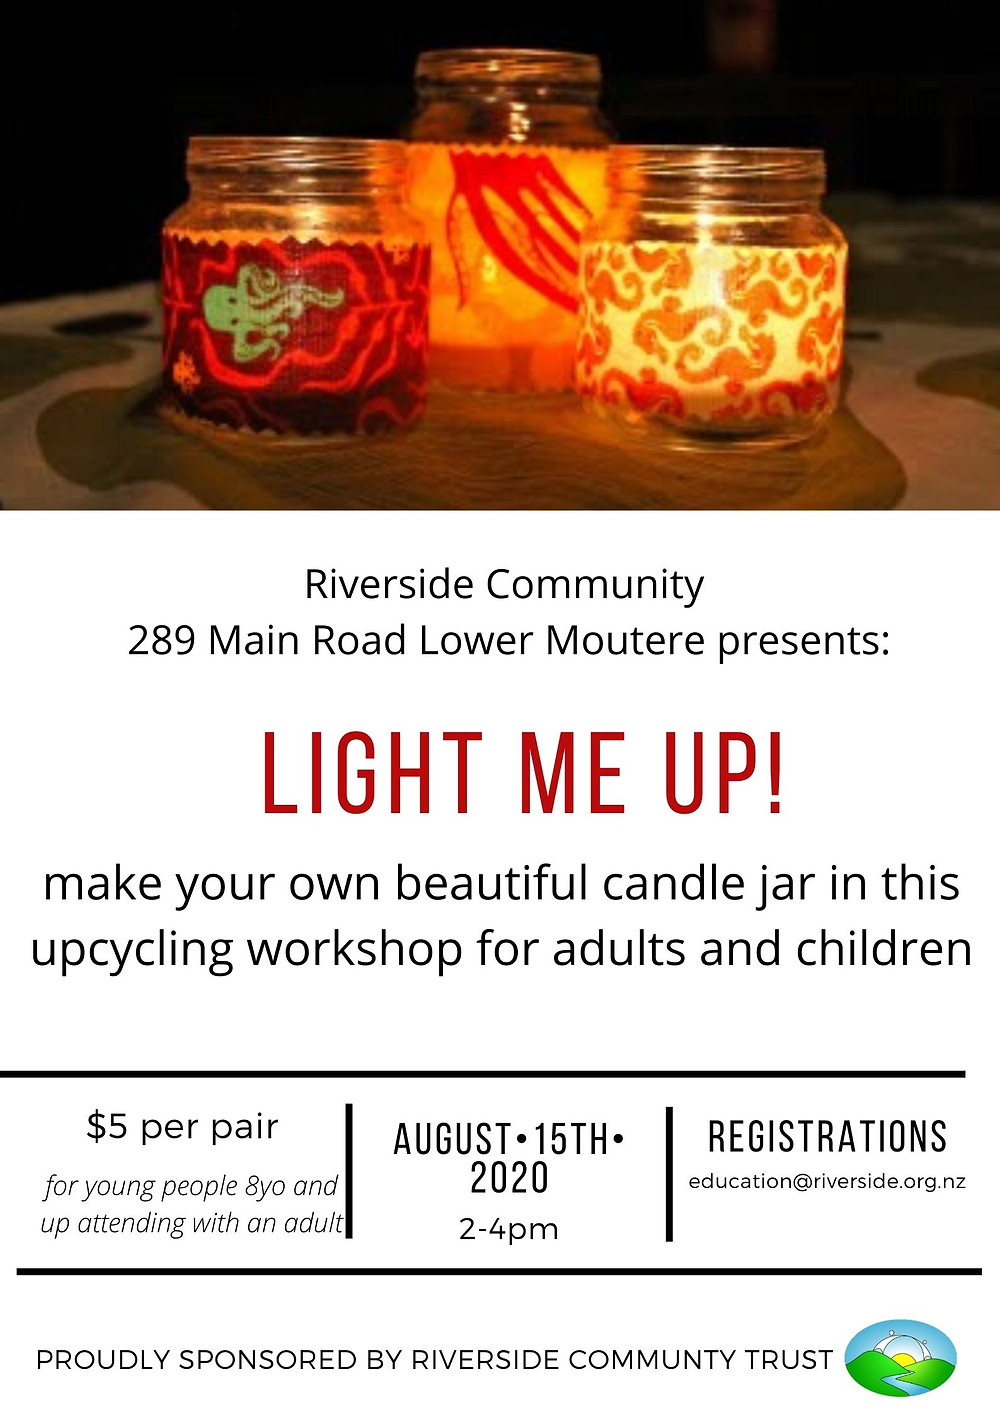 Upcycling candle jars